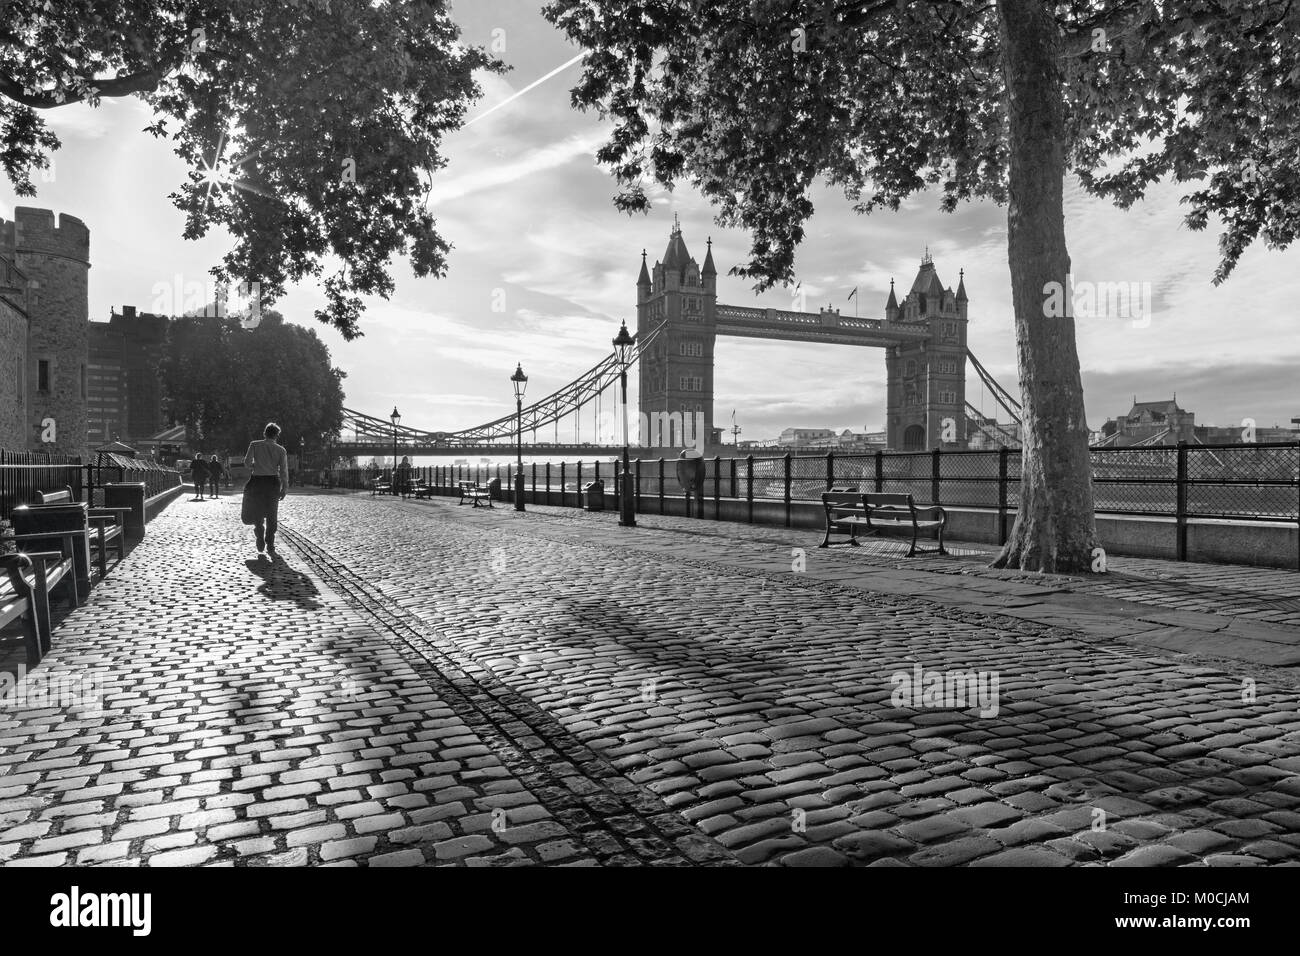 London - The  promenade and Tower bridge in morning light. - Stock Image